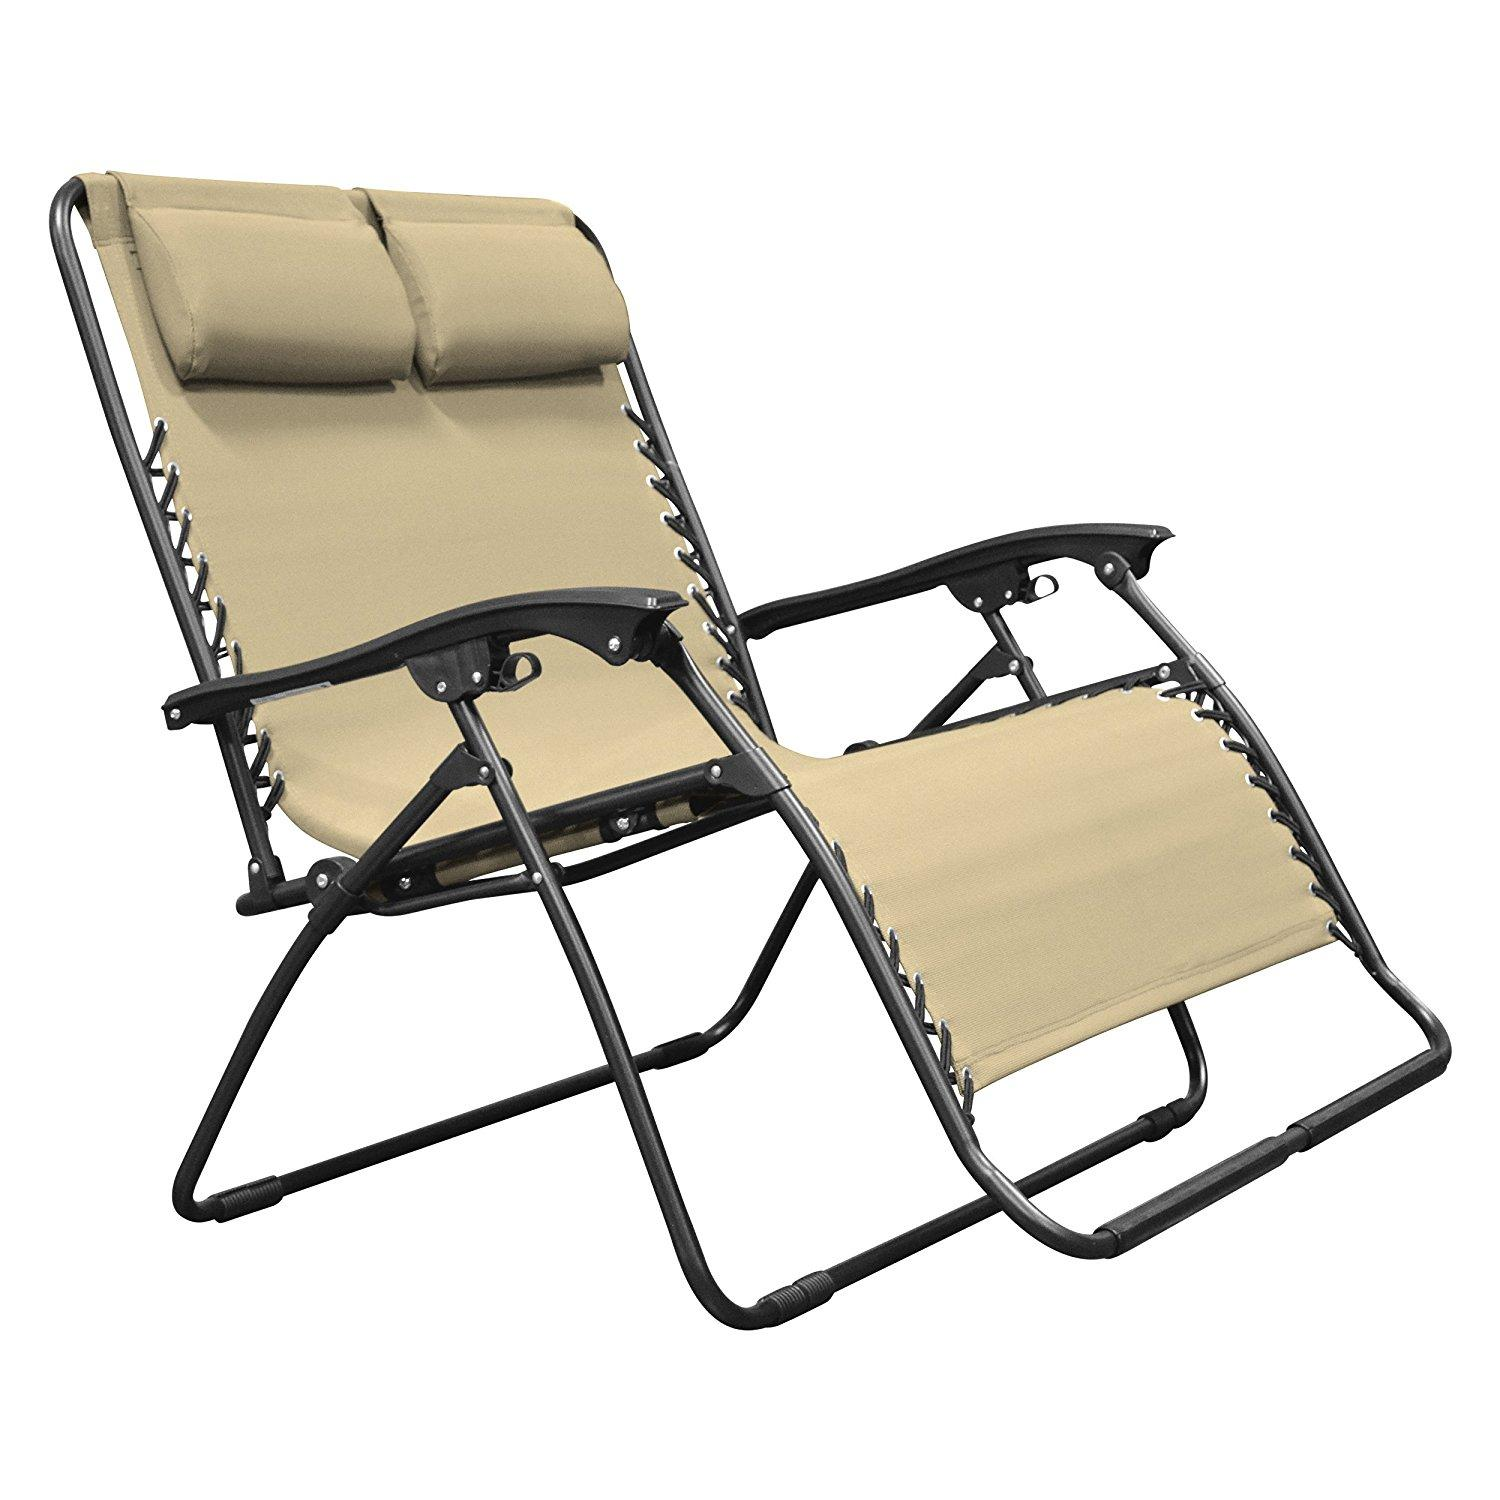 Amazon.com : Caravan Sports Zero Gravity Chair Loveseat